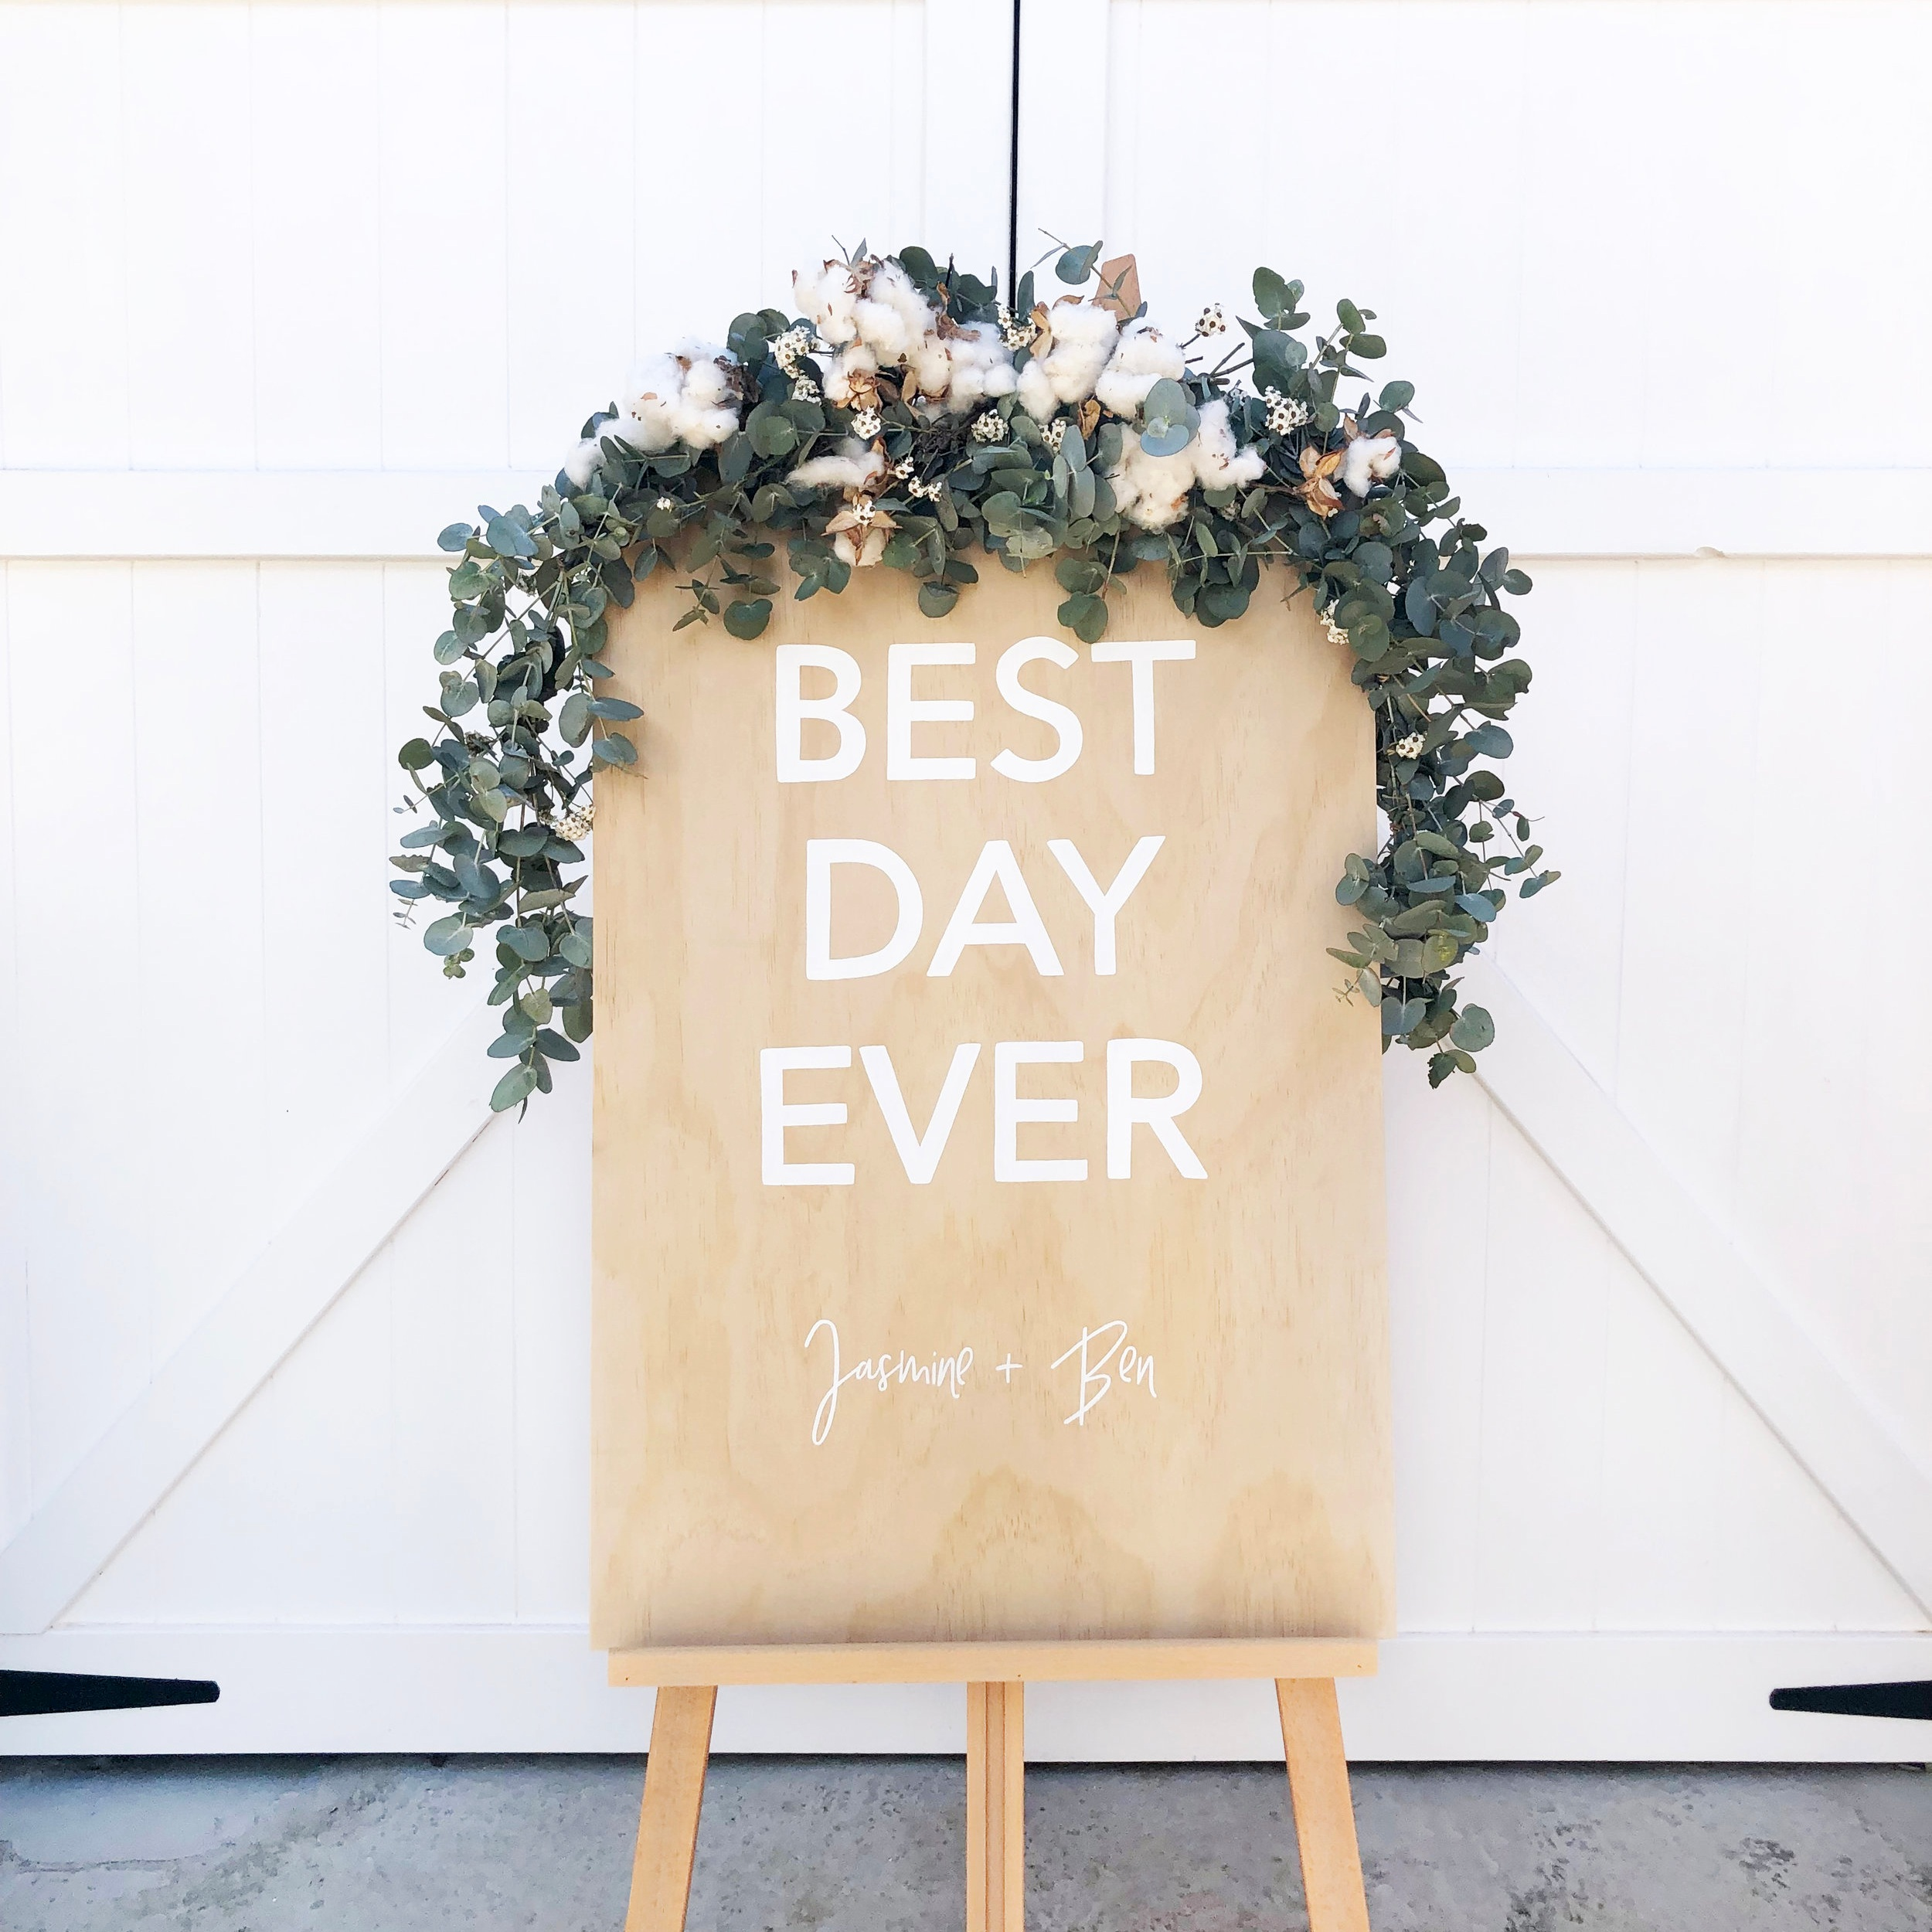 Best+Day+Ever+wooden+sign.jpg